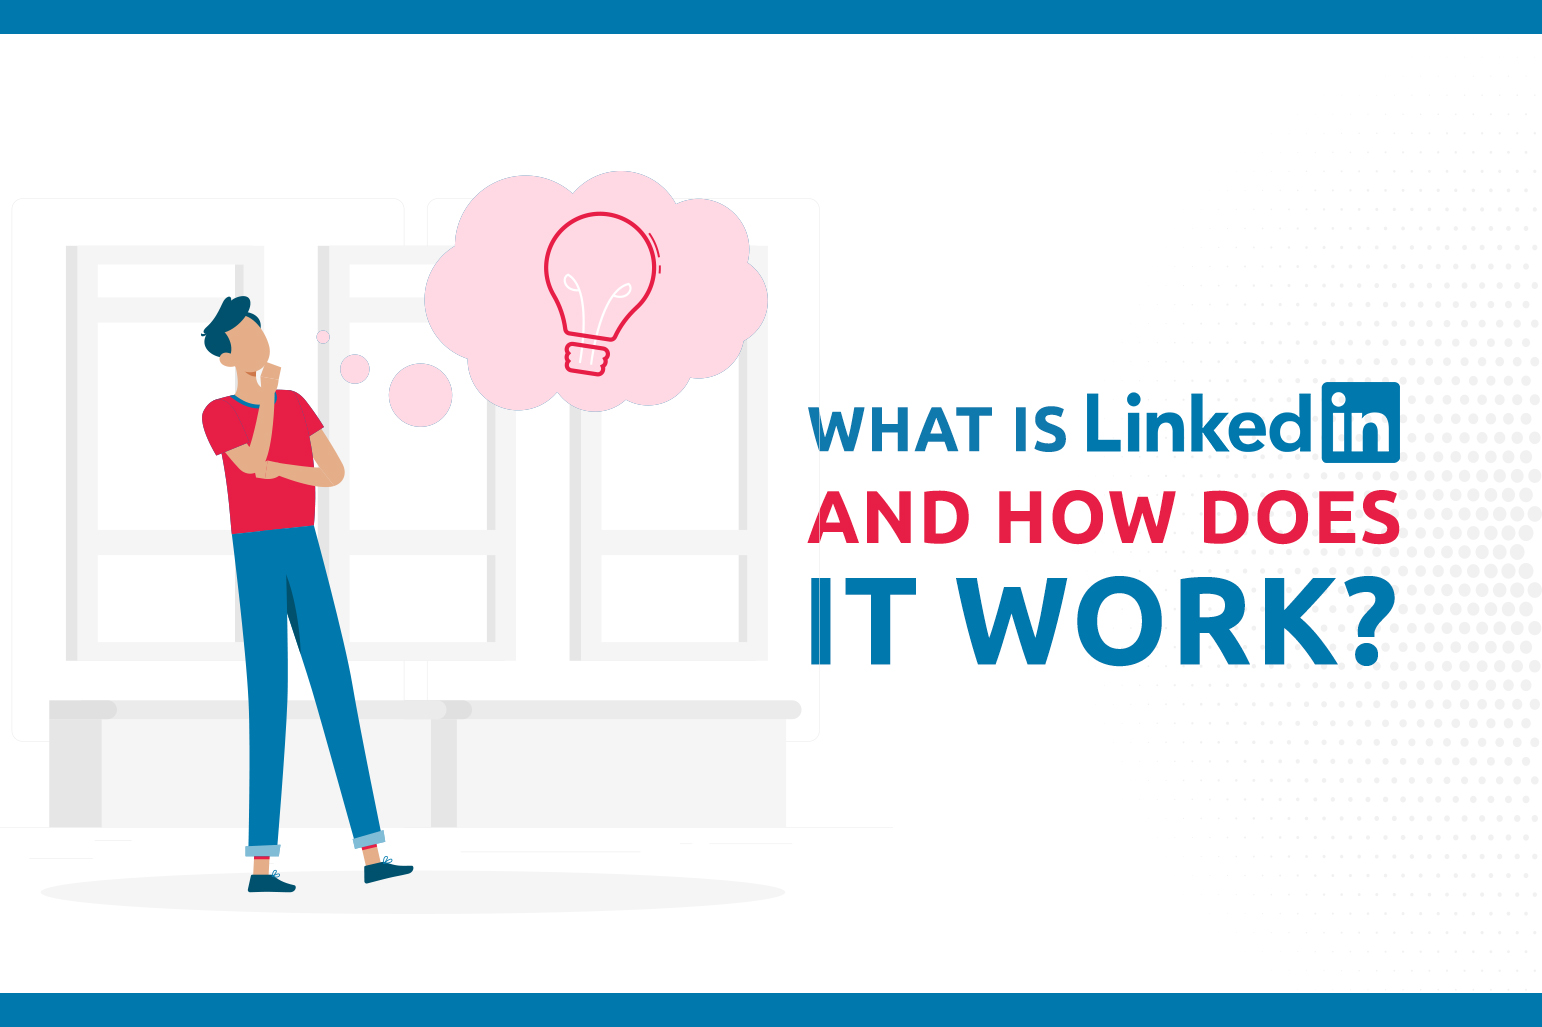 What Is LinkedIn And How Does It Work?